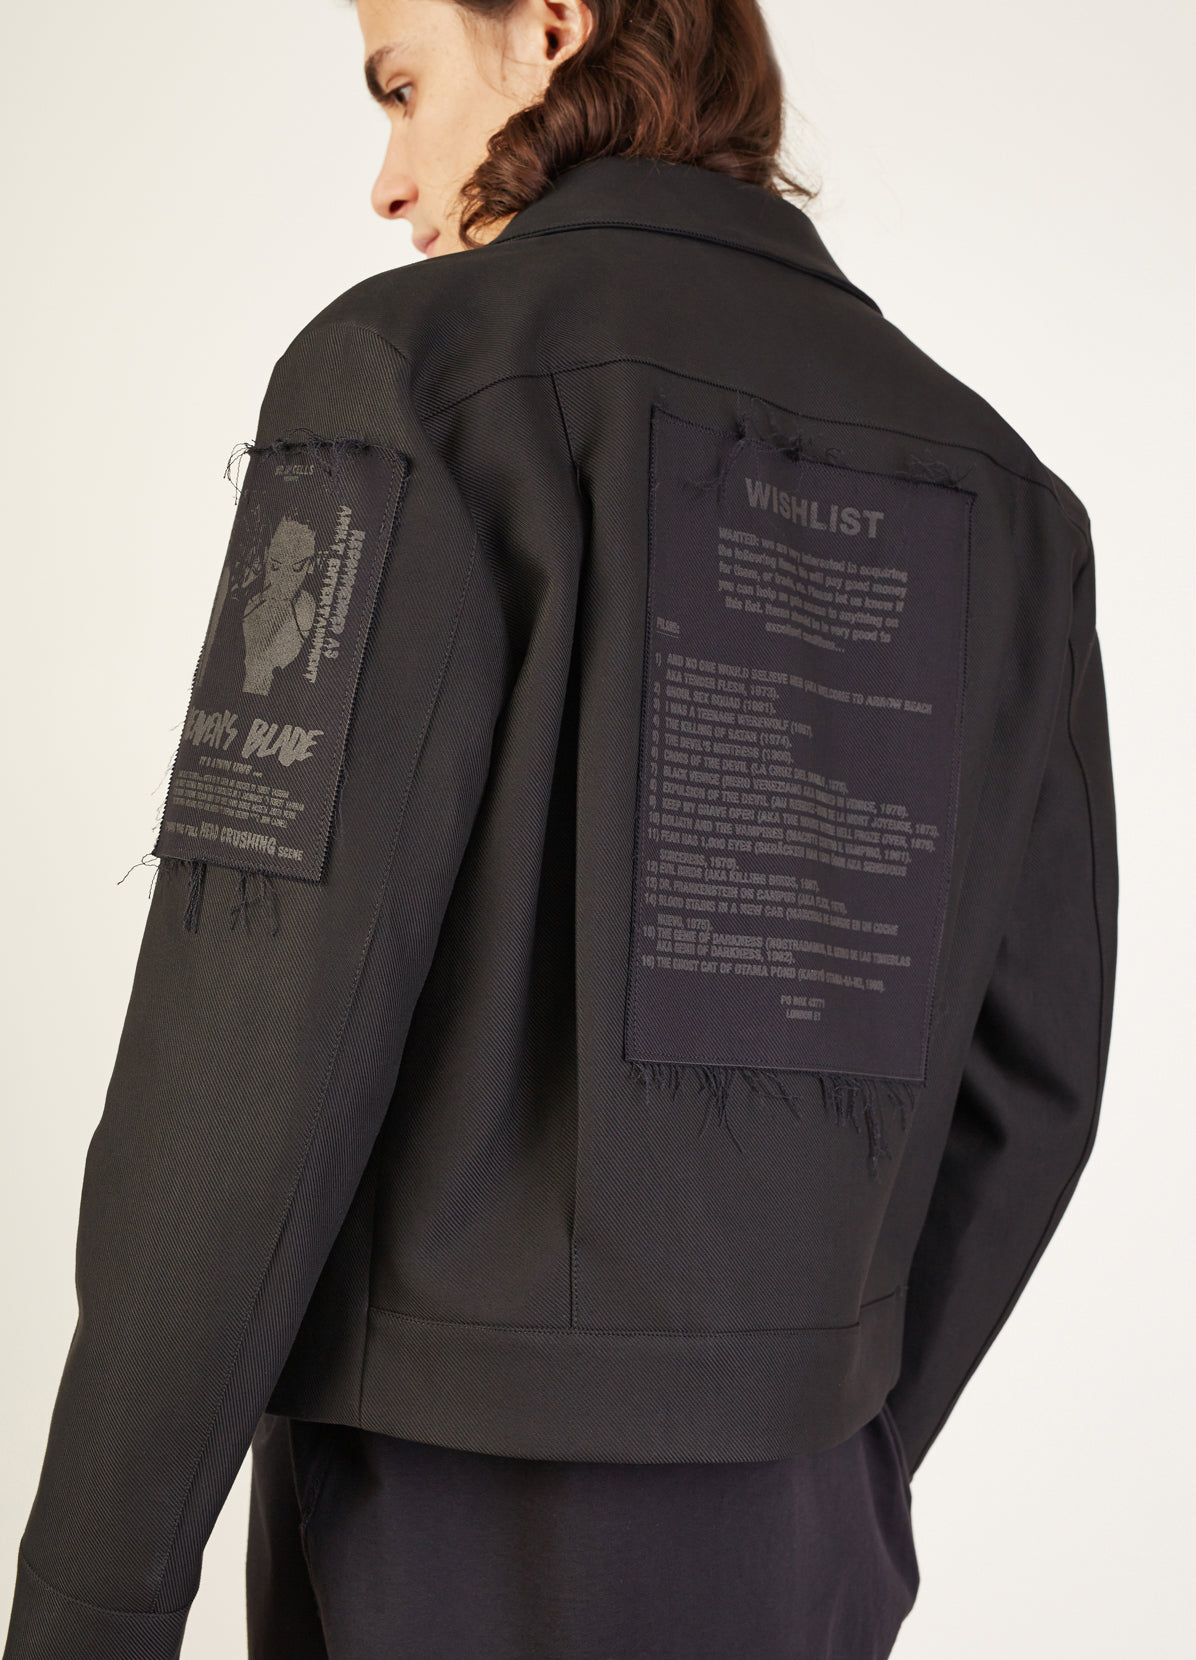 WISHLIST JACKET